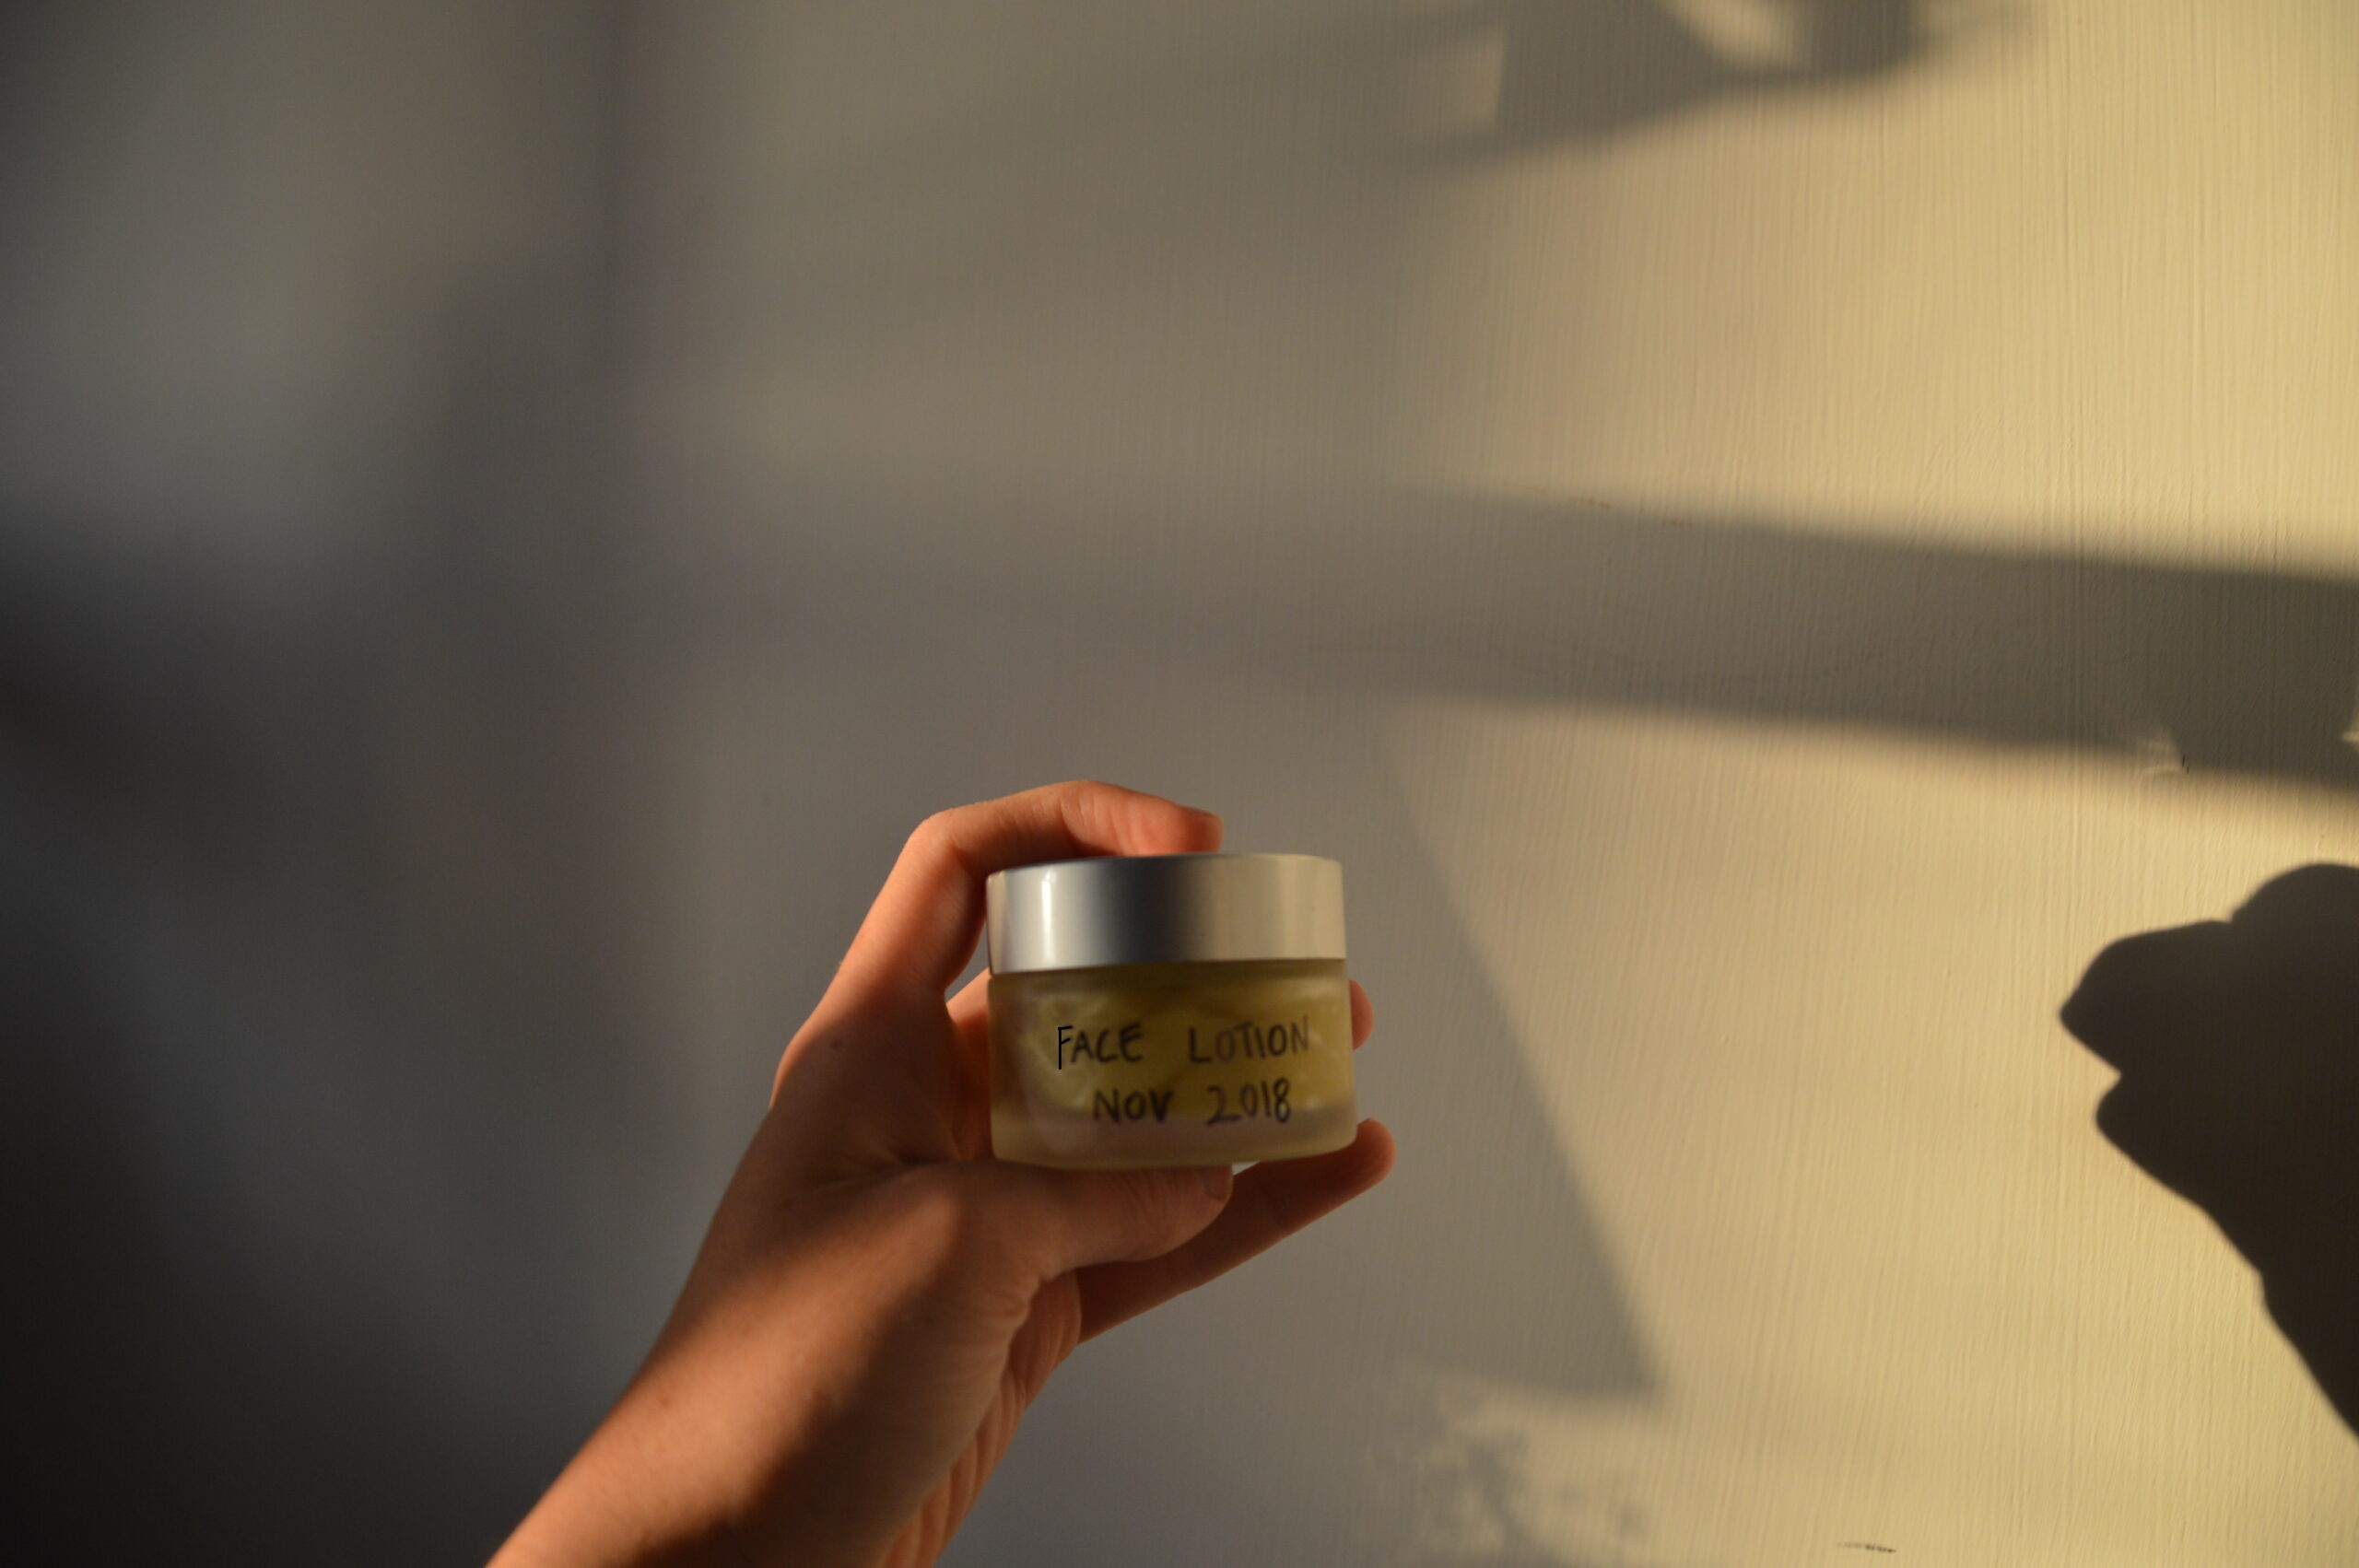 Plastic-Free Face Lotion